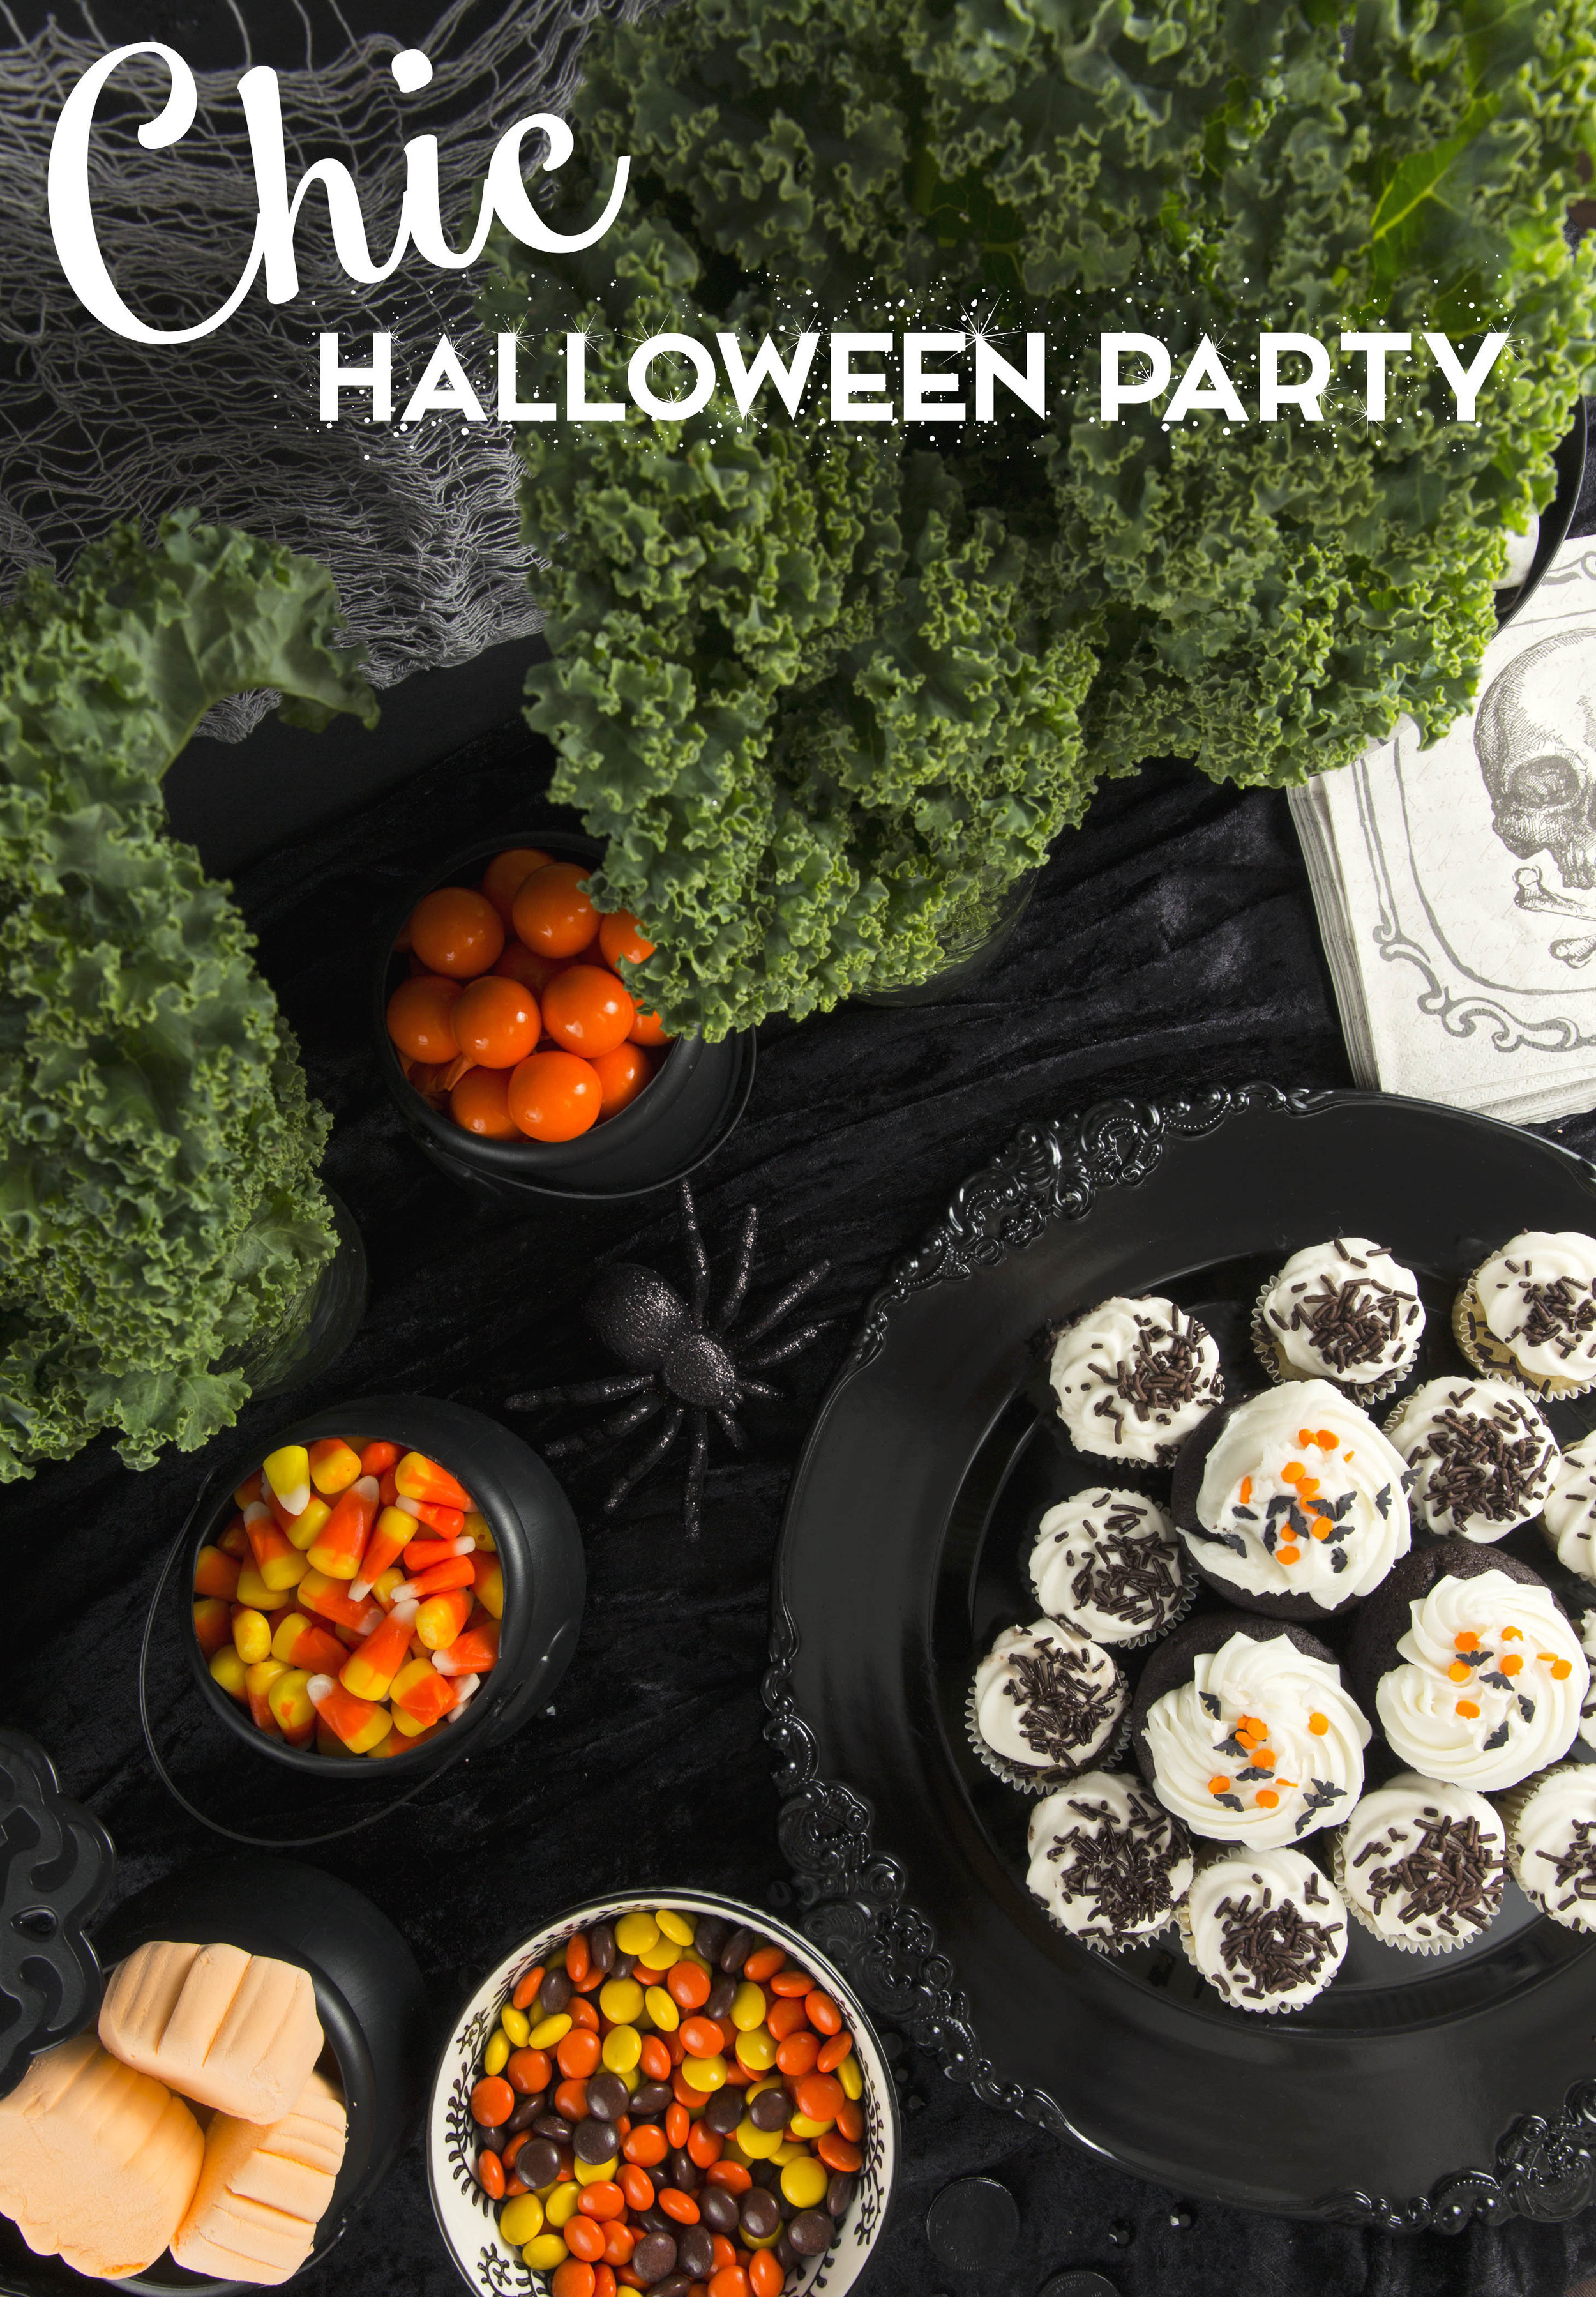 Chic Halloween Party!